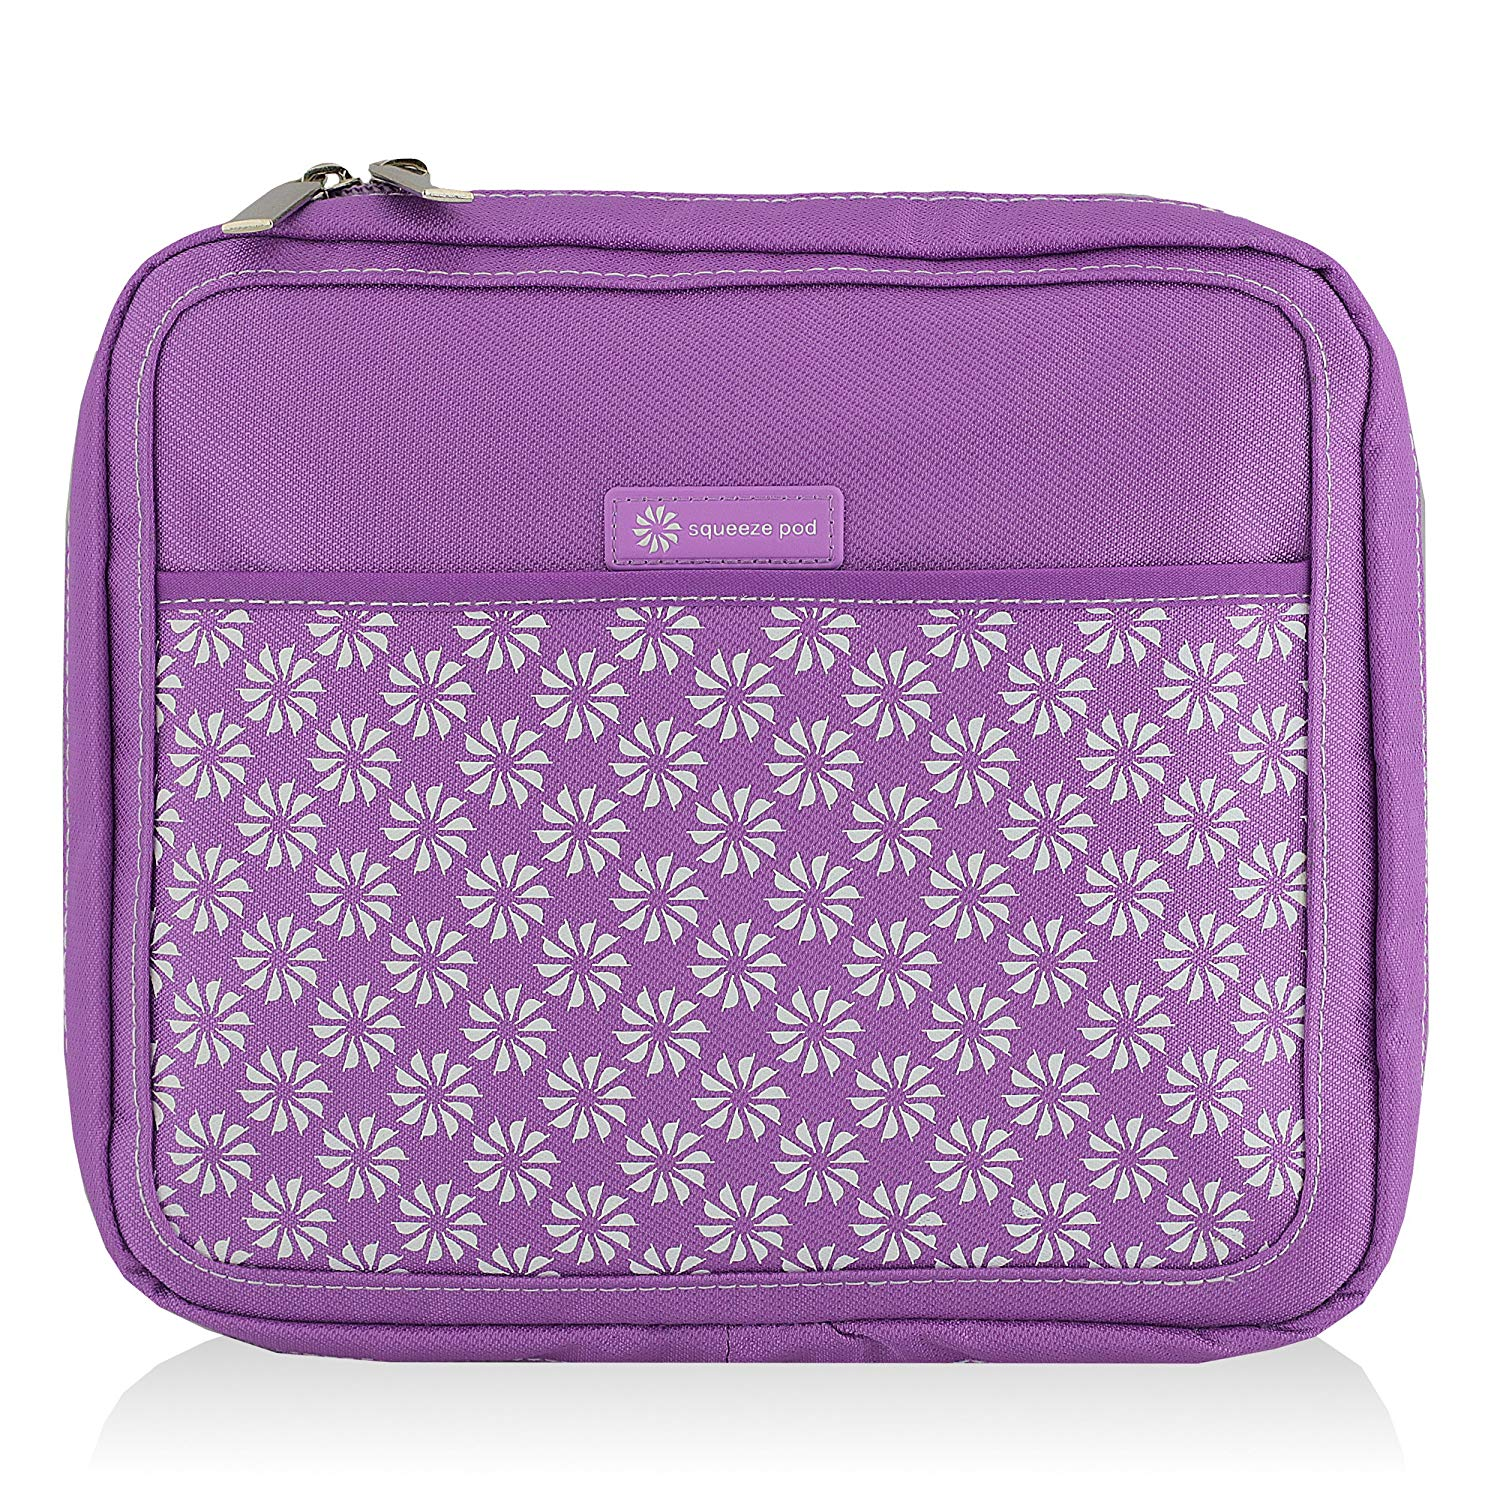 Squeeze Pod Slim Toiletry Travel Bag - 2 Bags in 1: Durable Nylon Toiletry Case + Removable Clear Quart Size Bag - TSA Approved. Compact Size for Carry-On Bag. Easy to Pack & Organize (PAPPRWW)